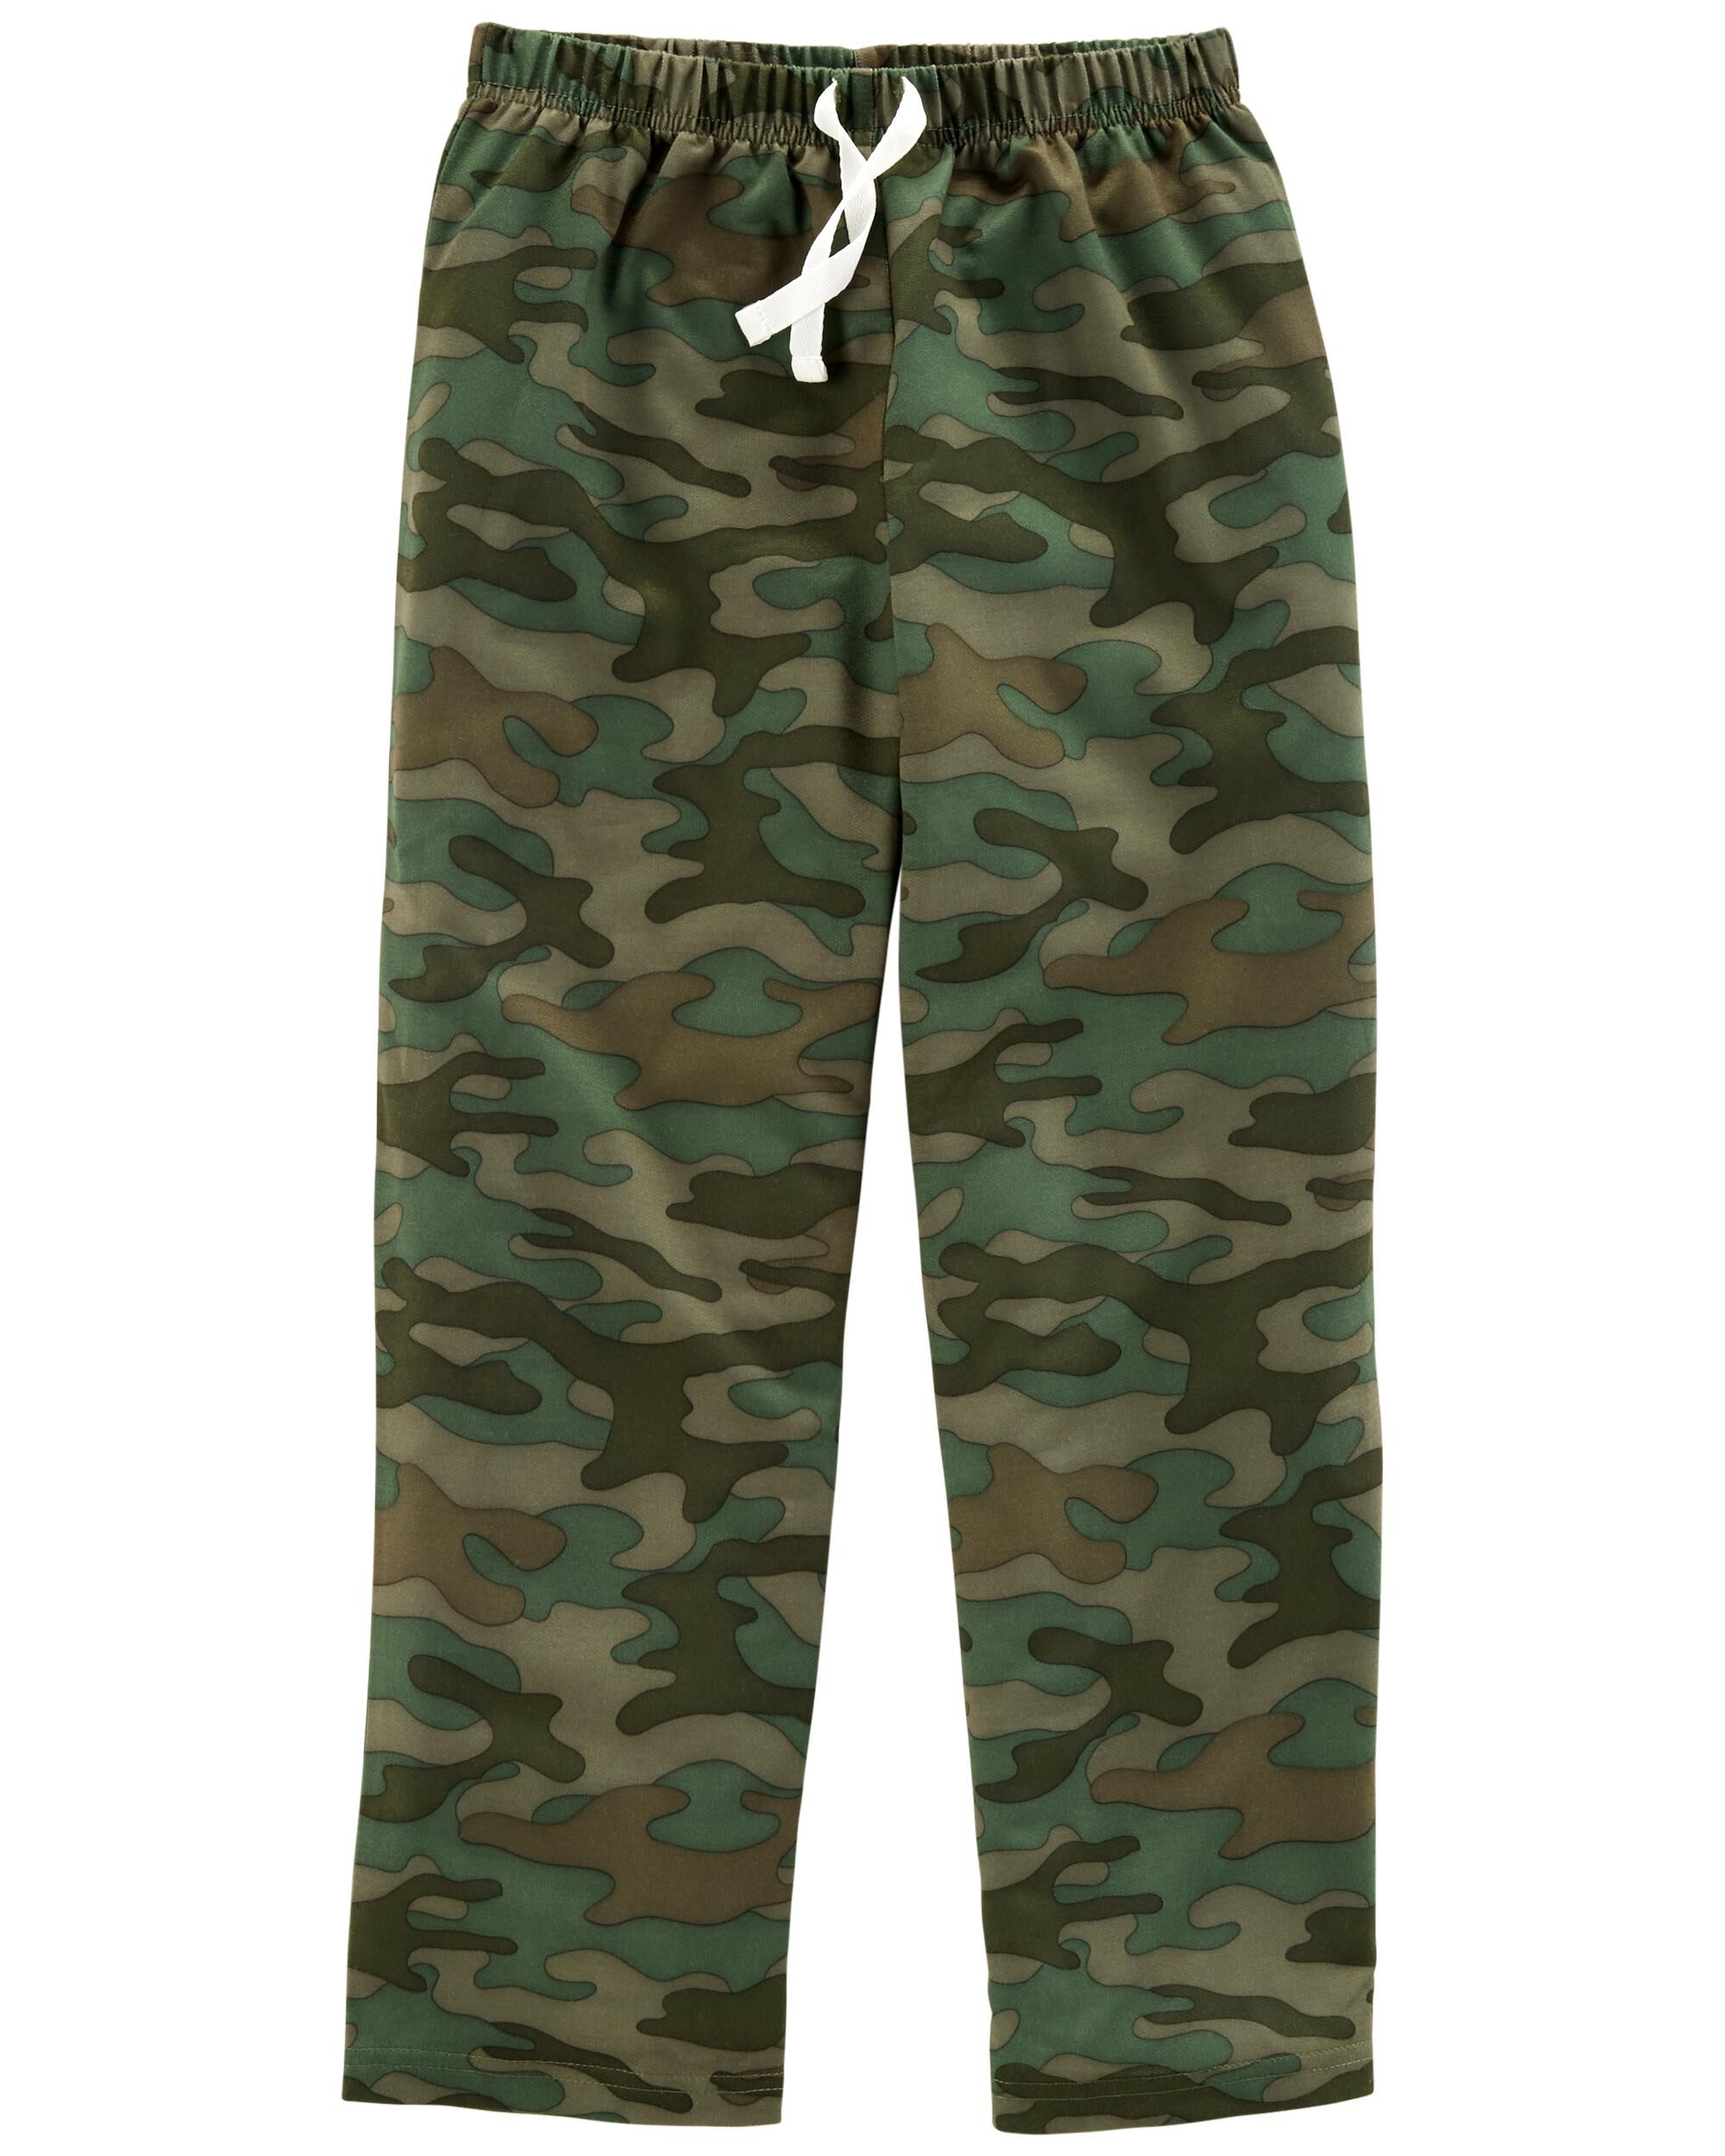 *Clearance*  Camo French Terry Poly Sleep Pants